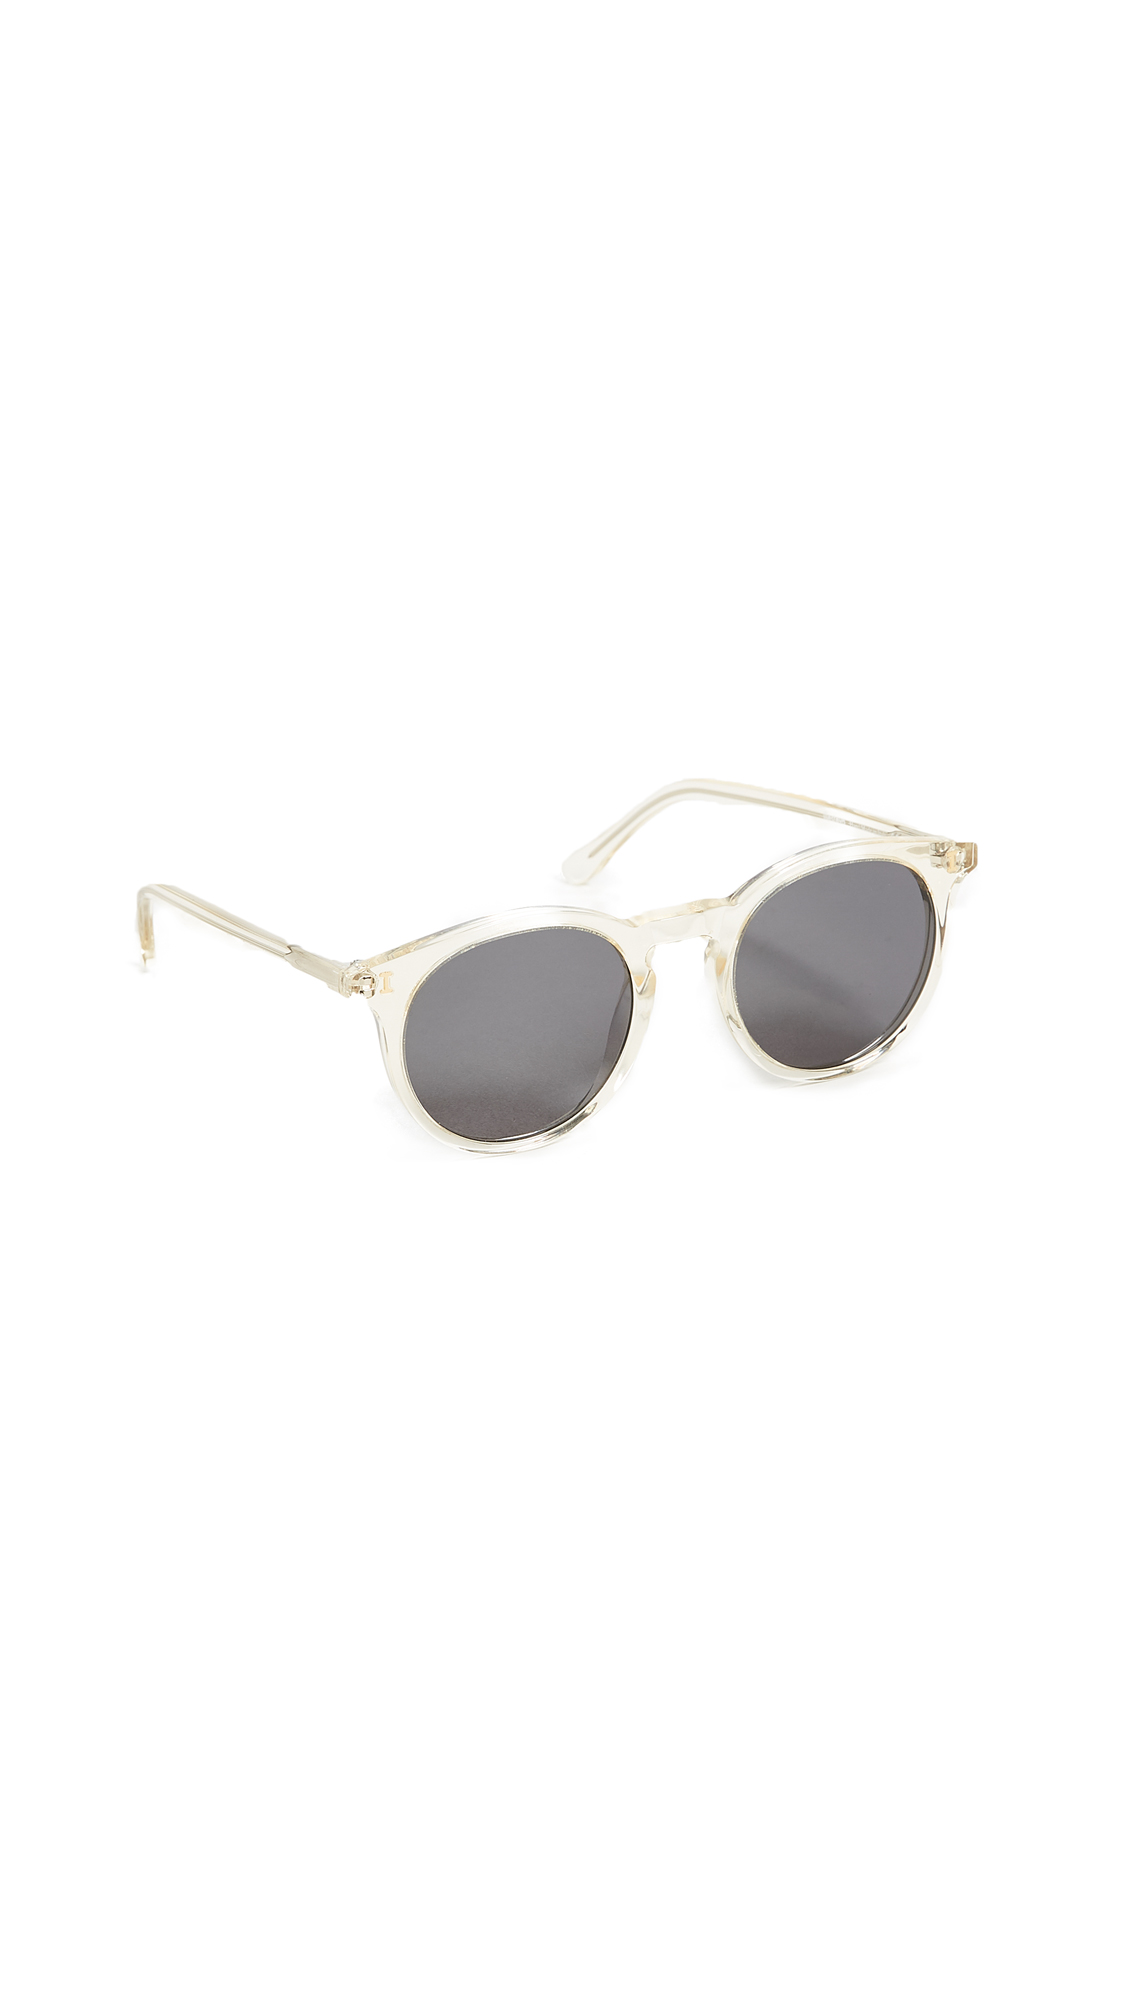 Illesteva Sterling Sunglasses In Champagne/Grey